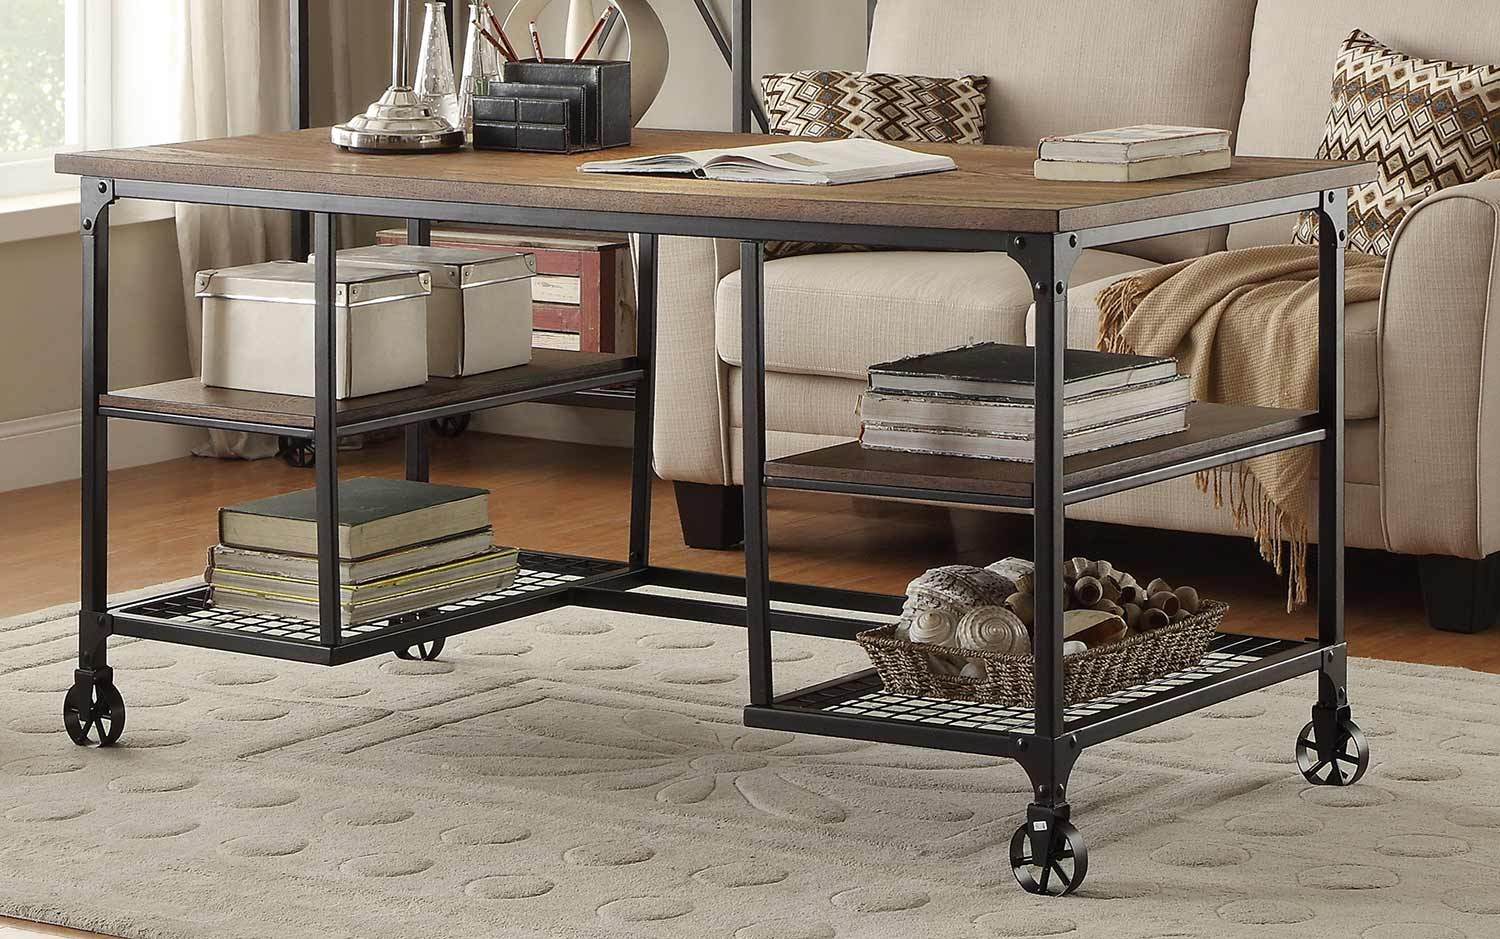 Homelegance Millwood Writing Desk - Weathered Wood Table Top with Metal Framing